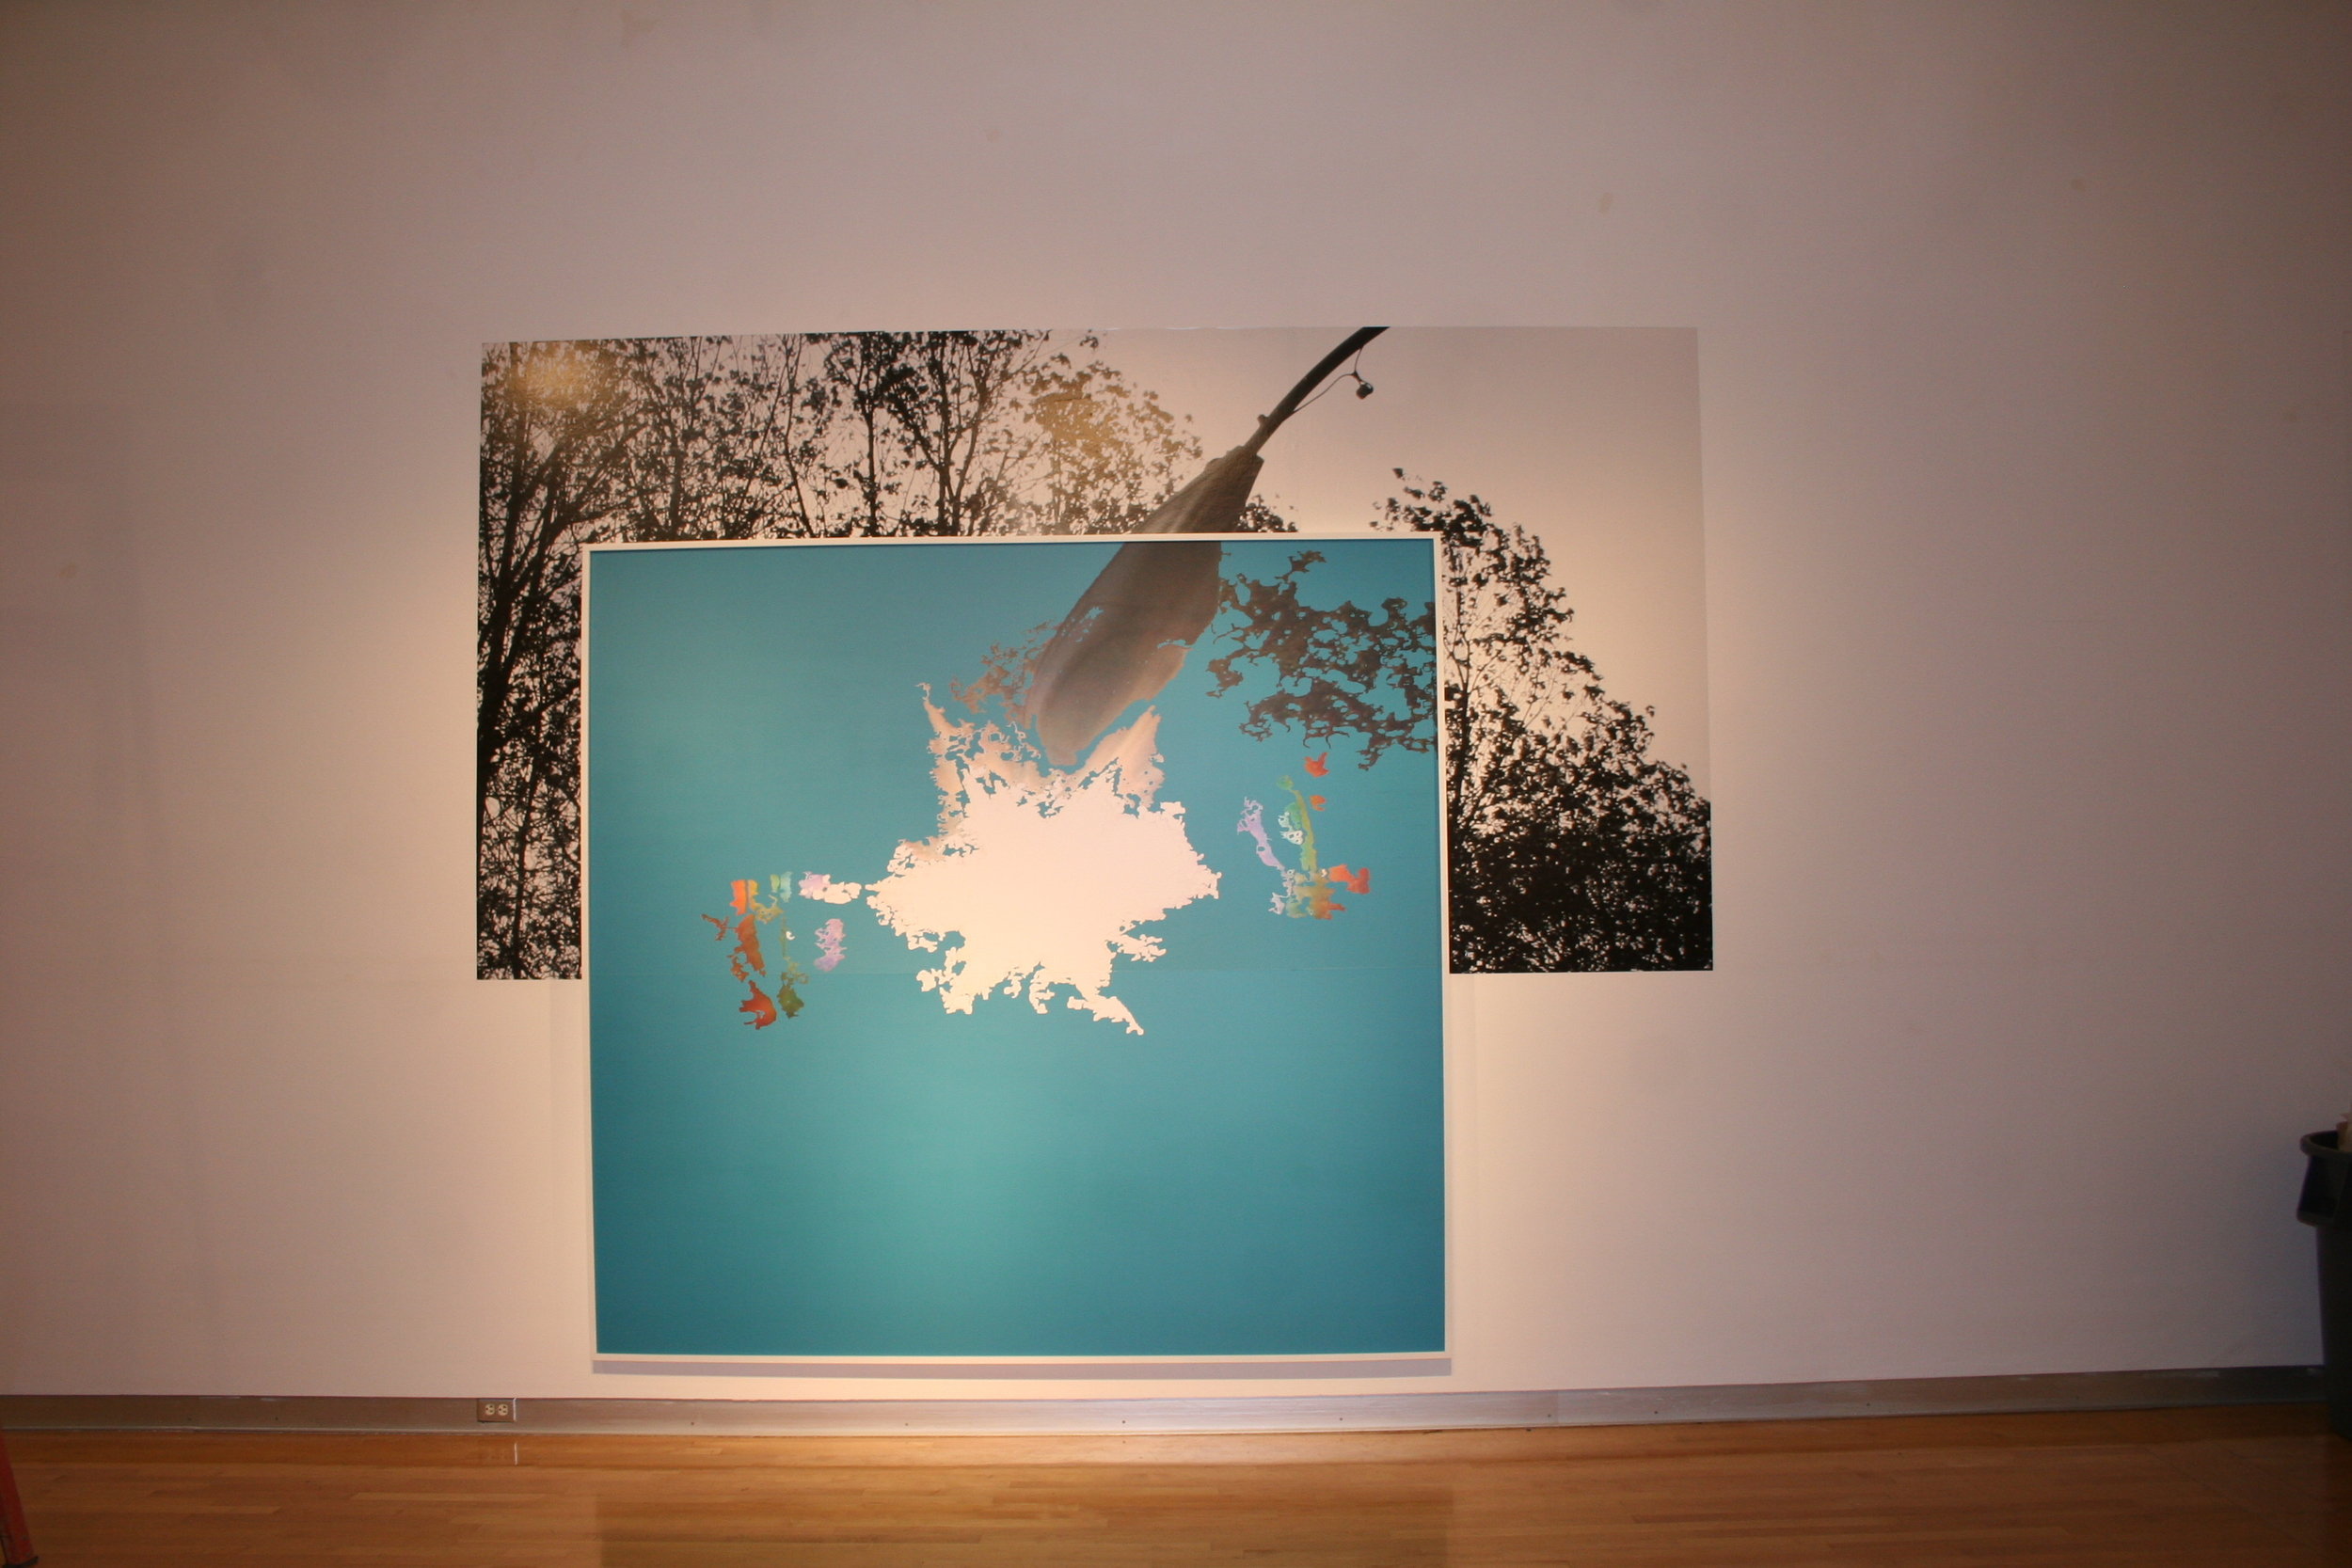 Day Road, Williamson Gallery, Scripps College, 2007.